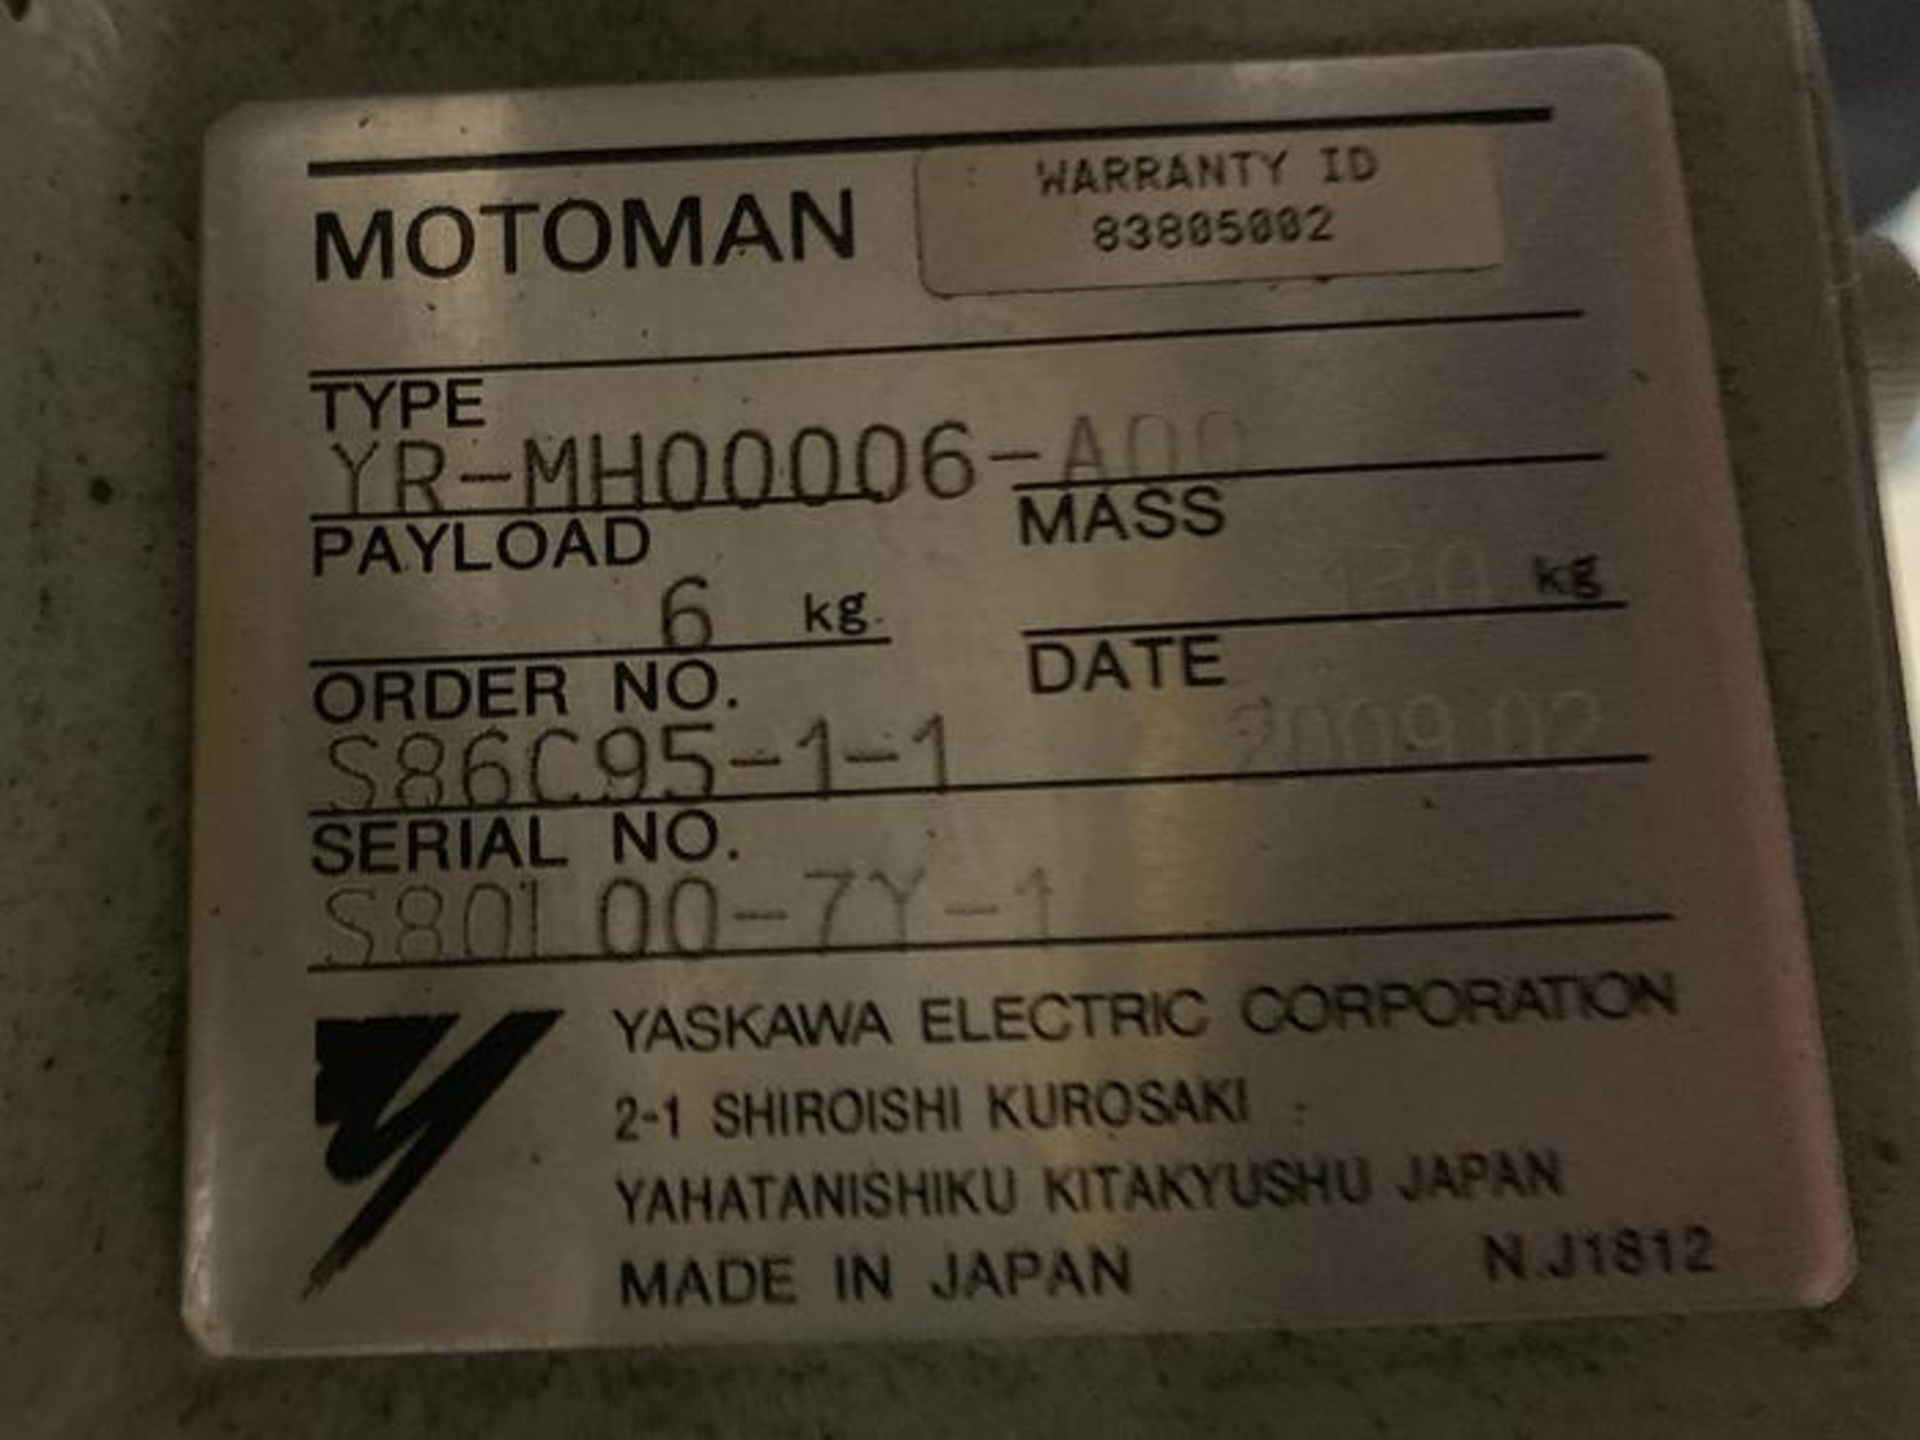 MOTOMAN ROBOT MH6 HIGH SPEED 6 AXIS ROBOT WITH DX100 CONTROLLER, CABLES & TEACH, SN S86C95-1-1 - Image 7 of 8